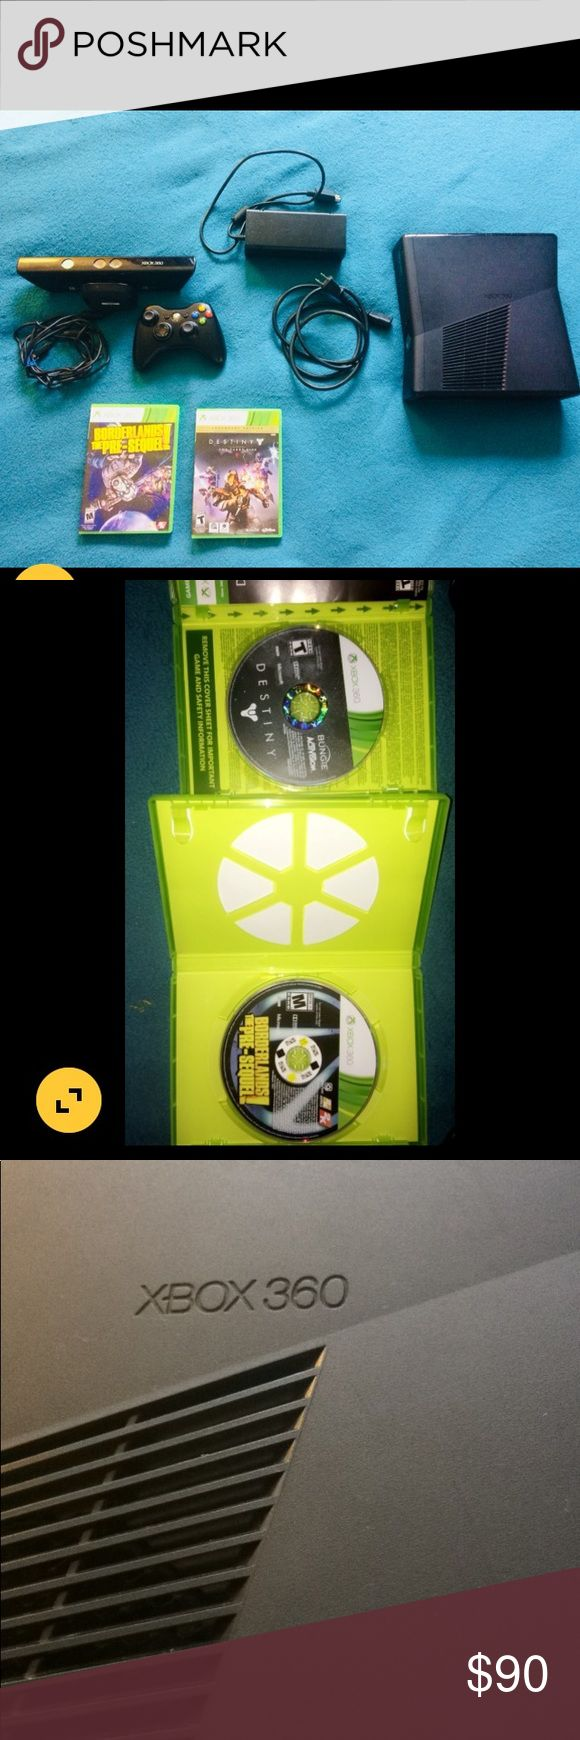 Xbox 360 bundle This bundle includes: -Xbox 360 slim -Kinect  -1 controller  -power cord -2 videogames (borderlands presequel and destiny )  ***Does not come w/ HDMI cord*** xbox Other